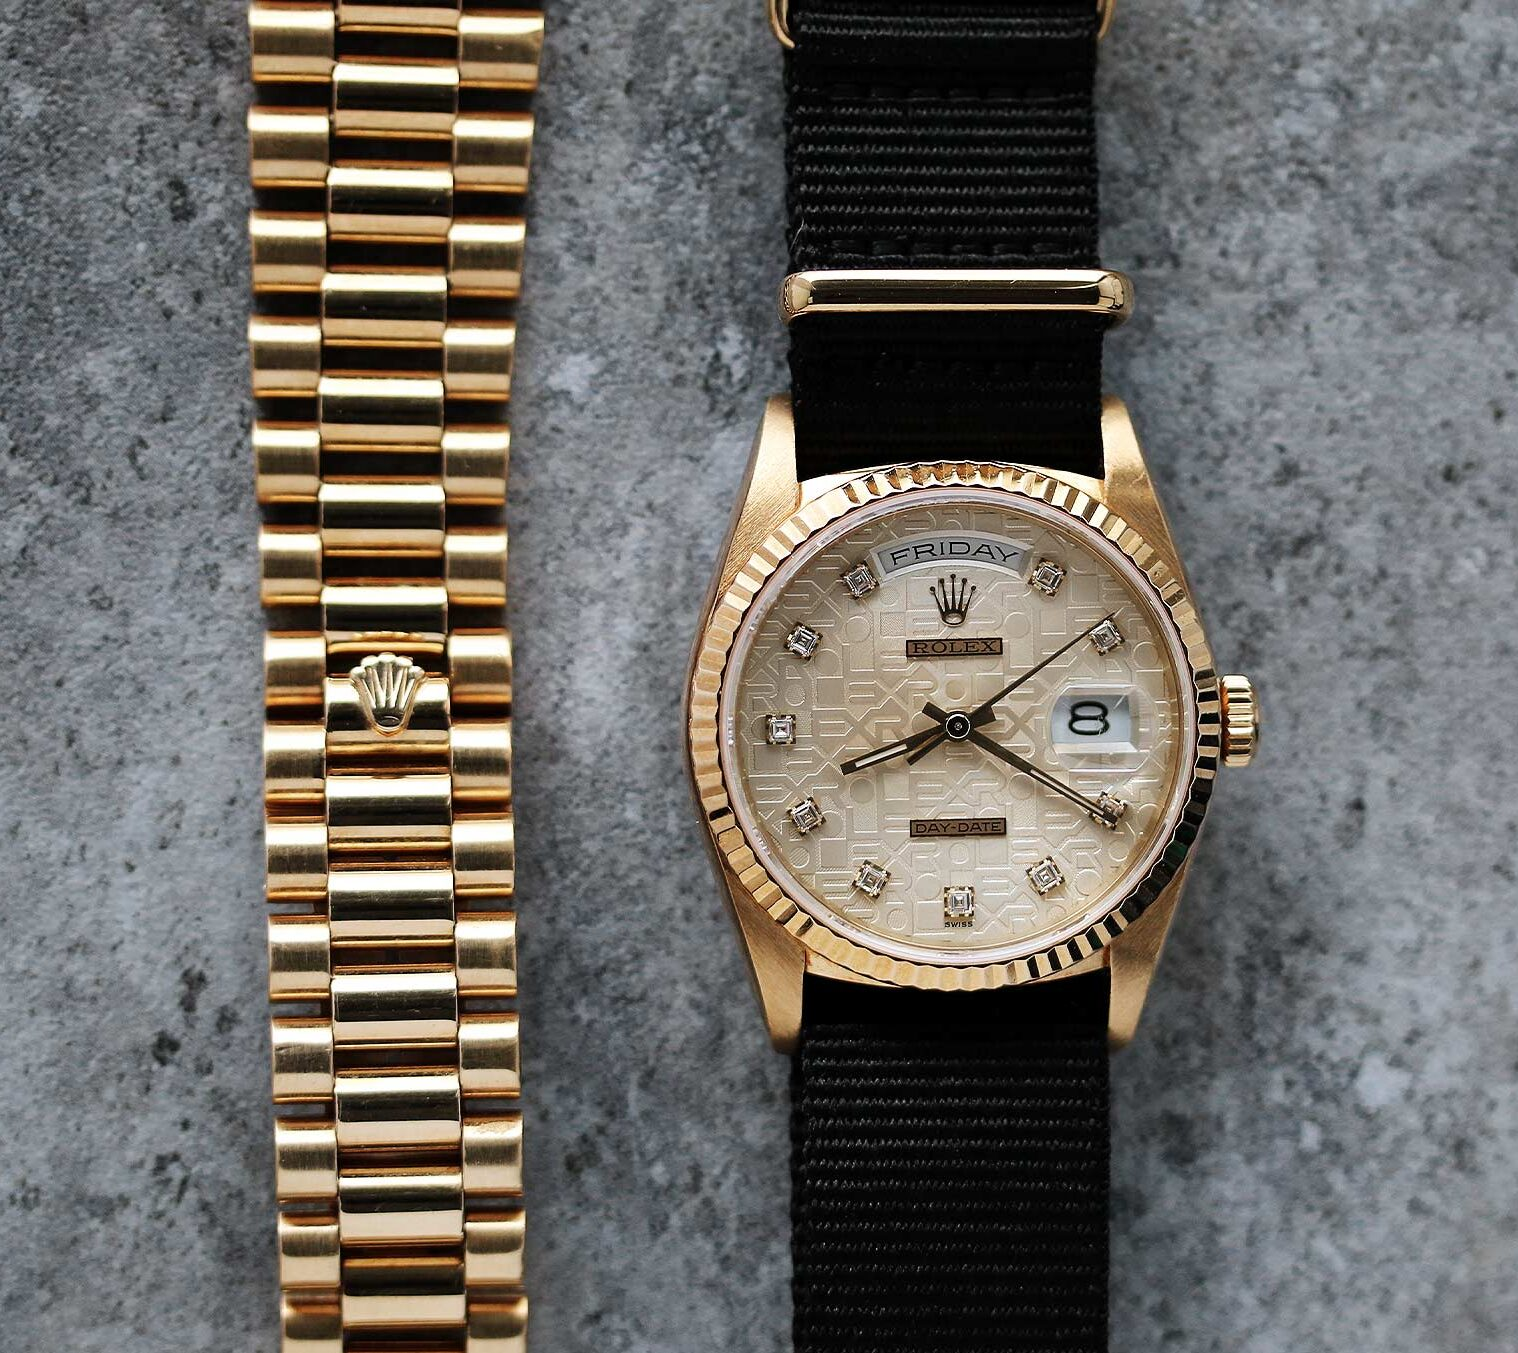 Rolex Day Date Anniversary Dial watch for sale